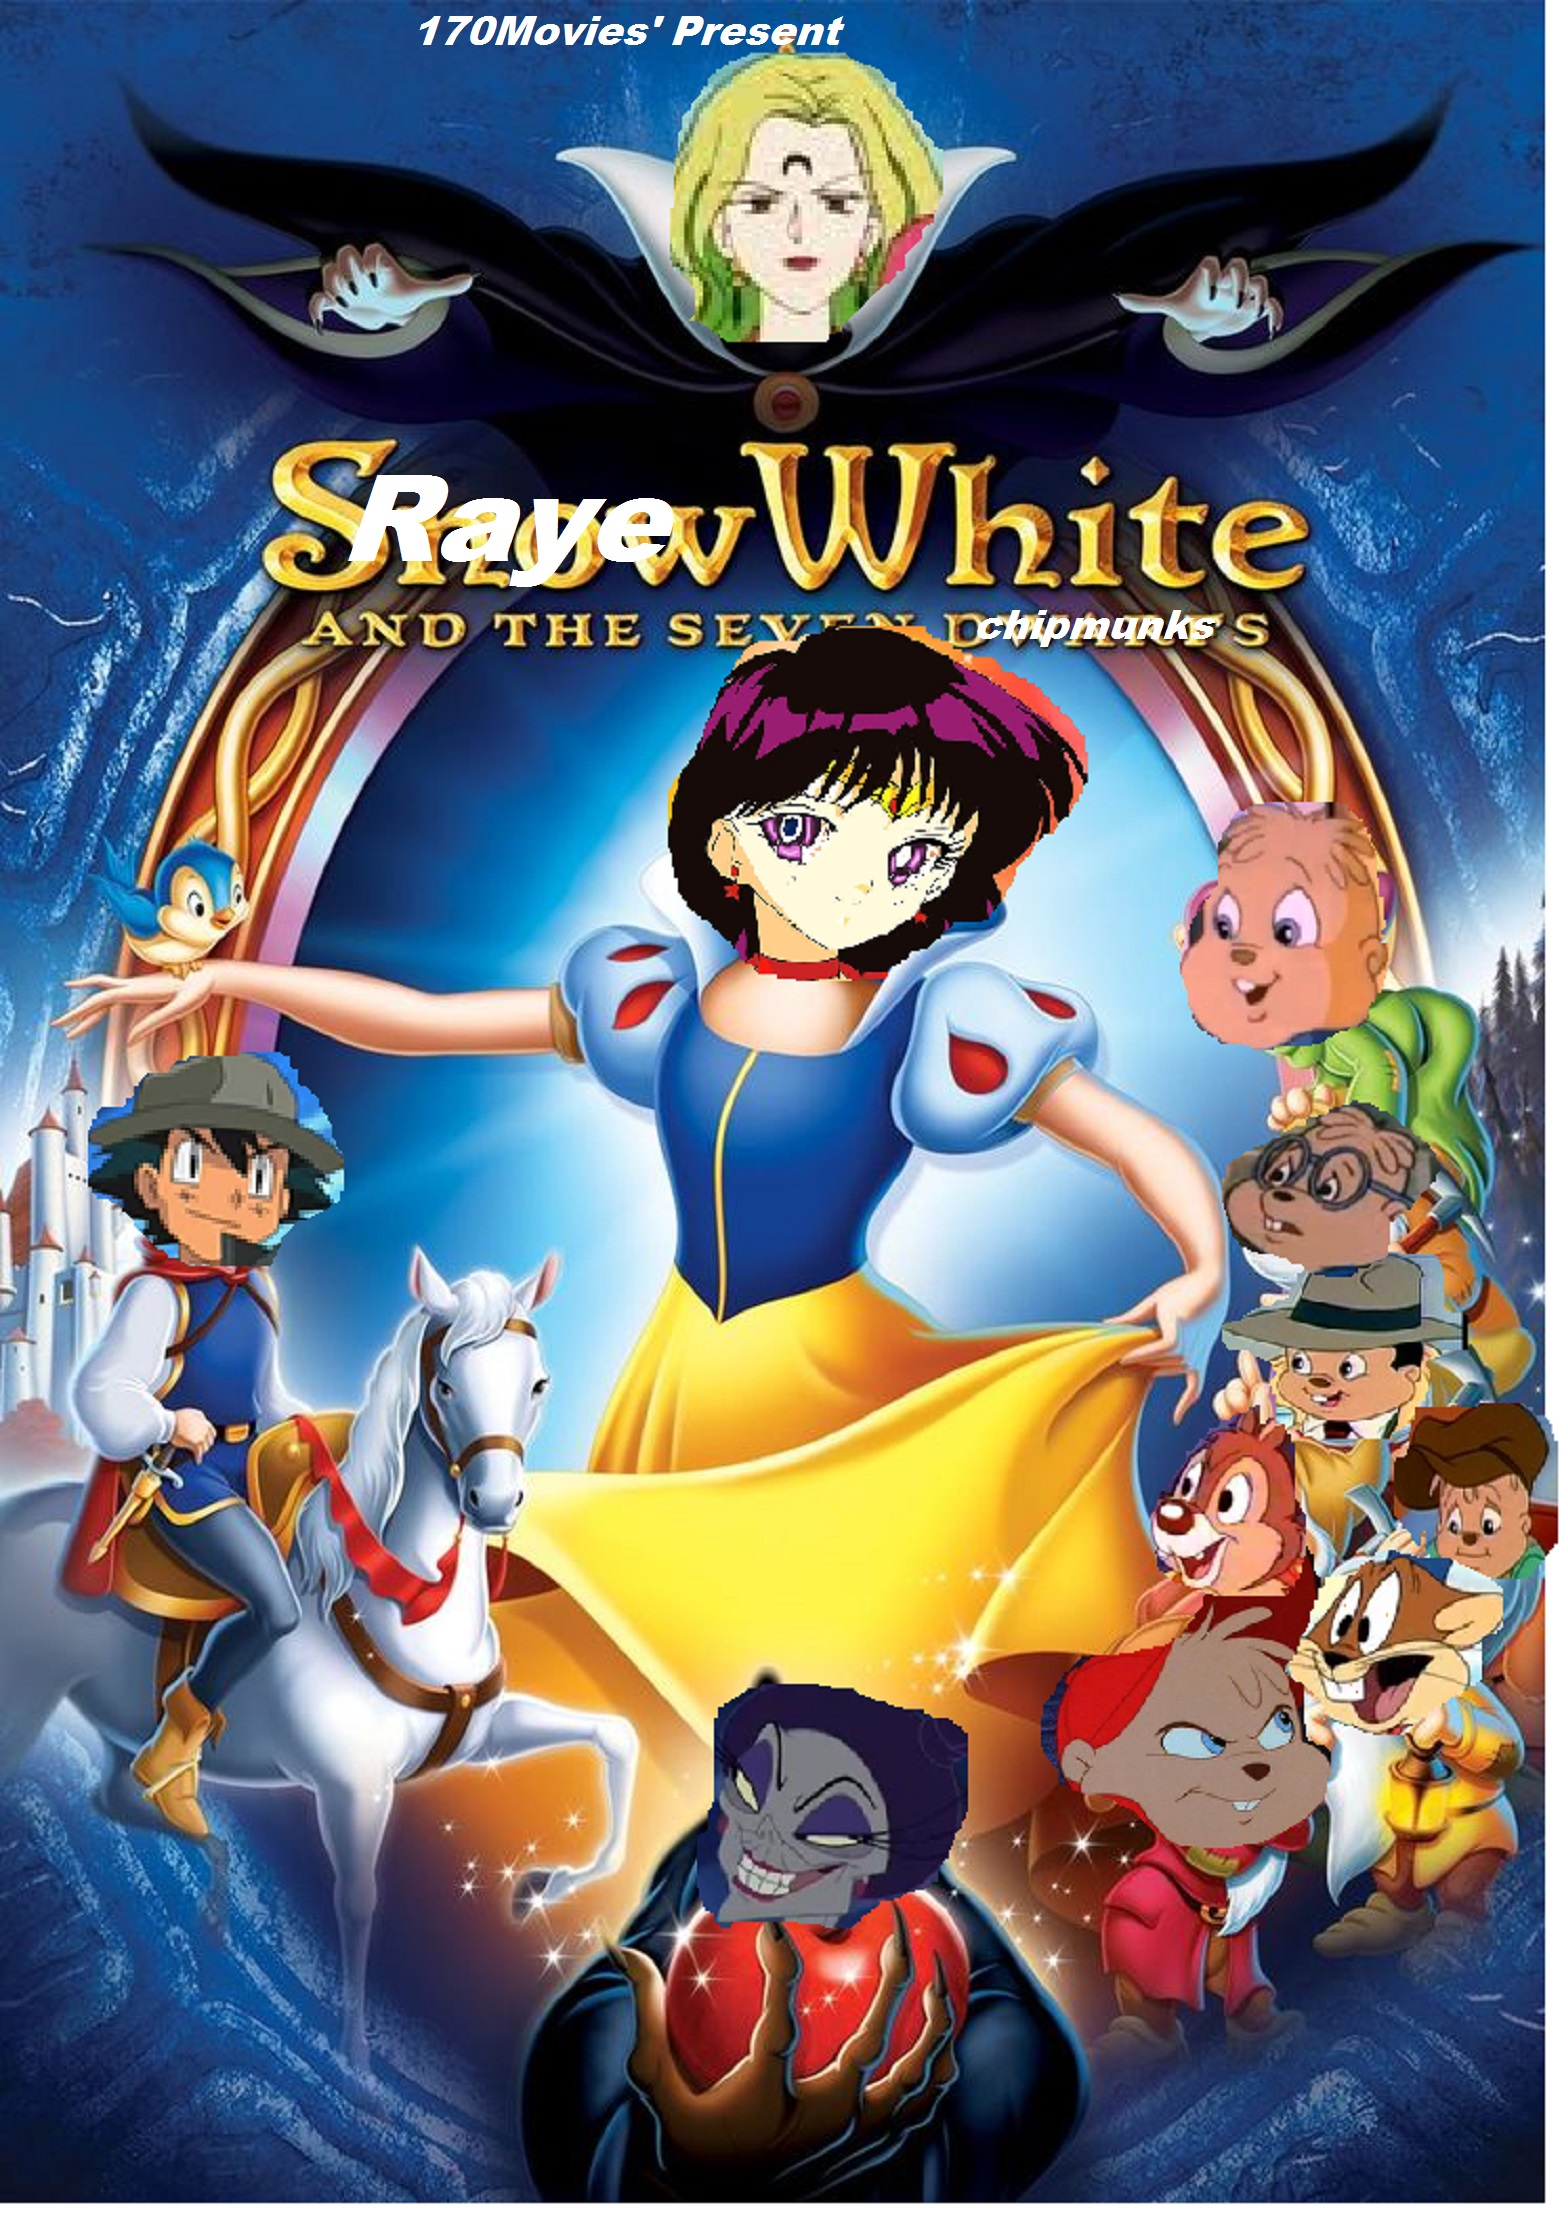 raye white and the seven chipmunks